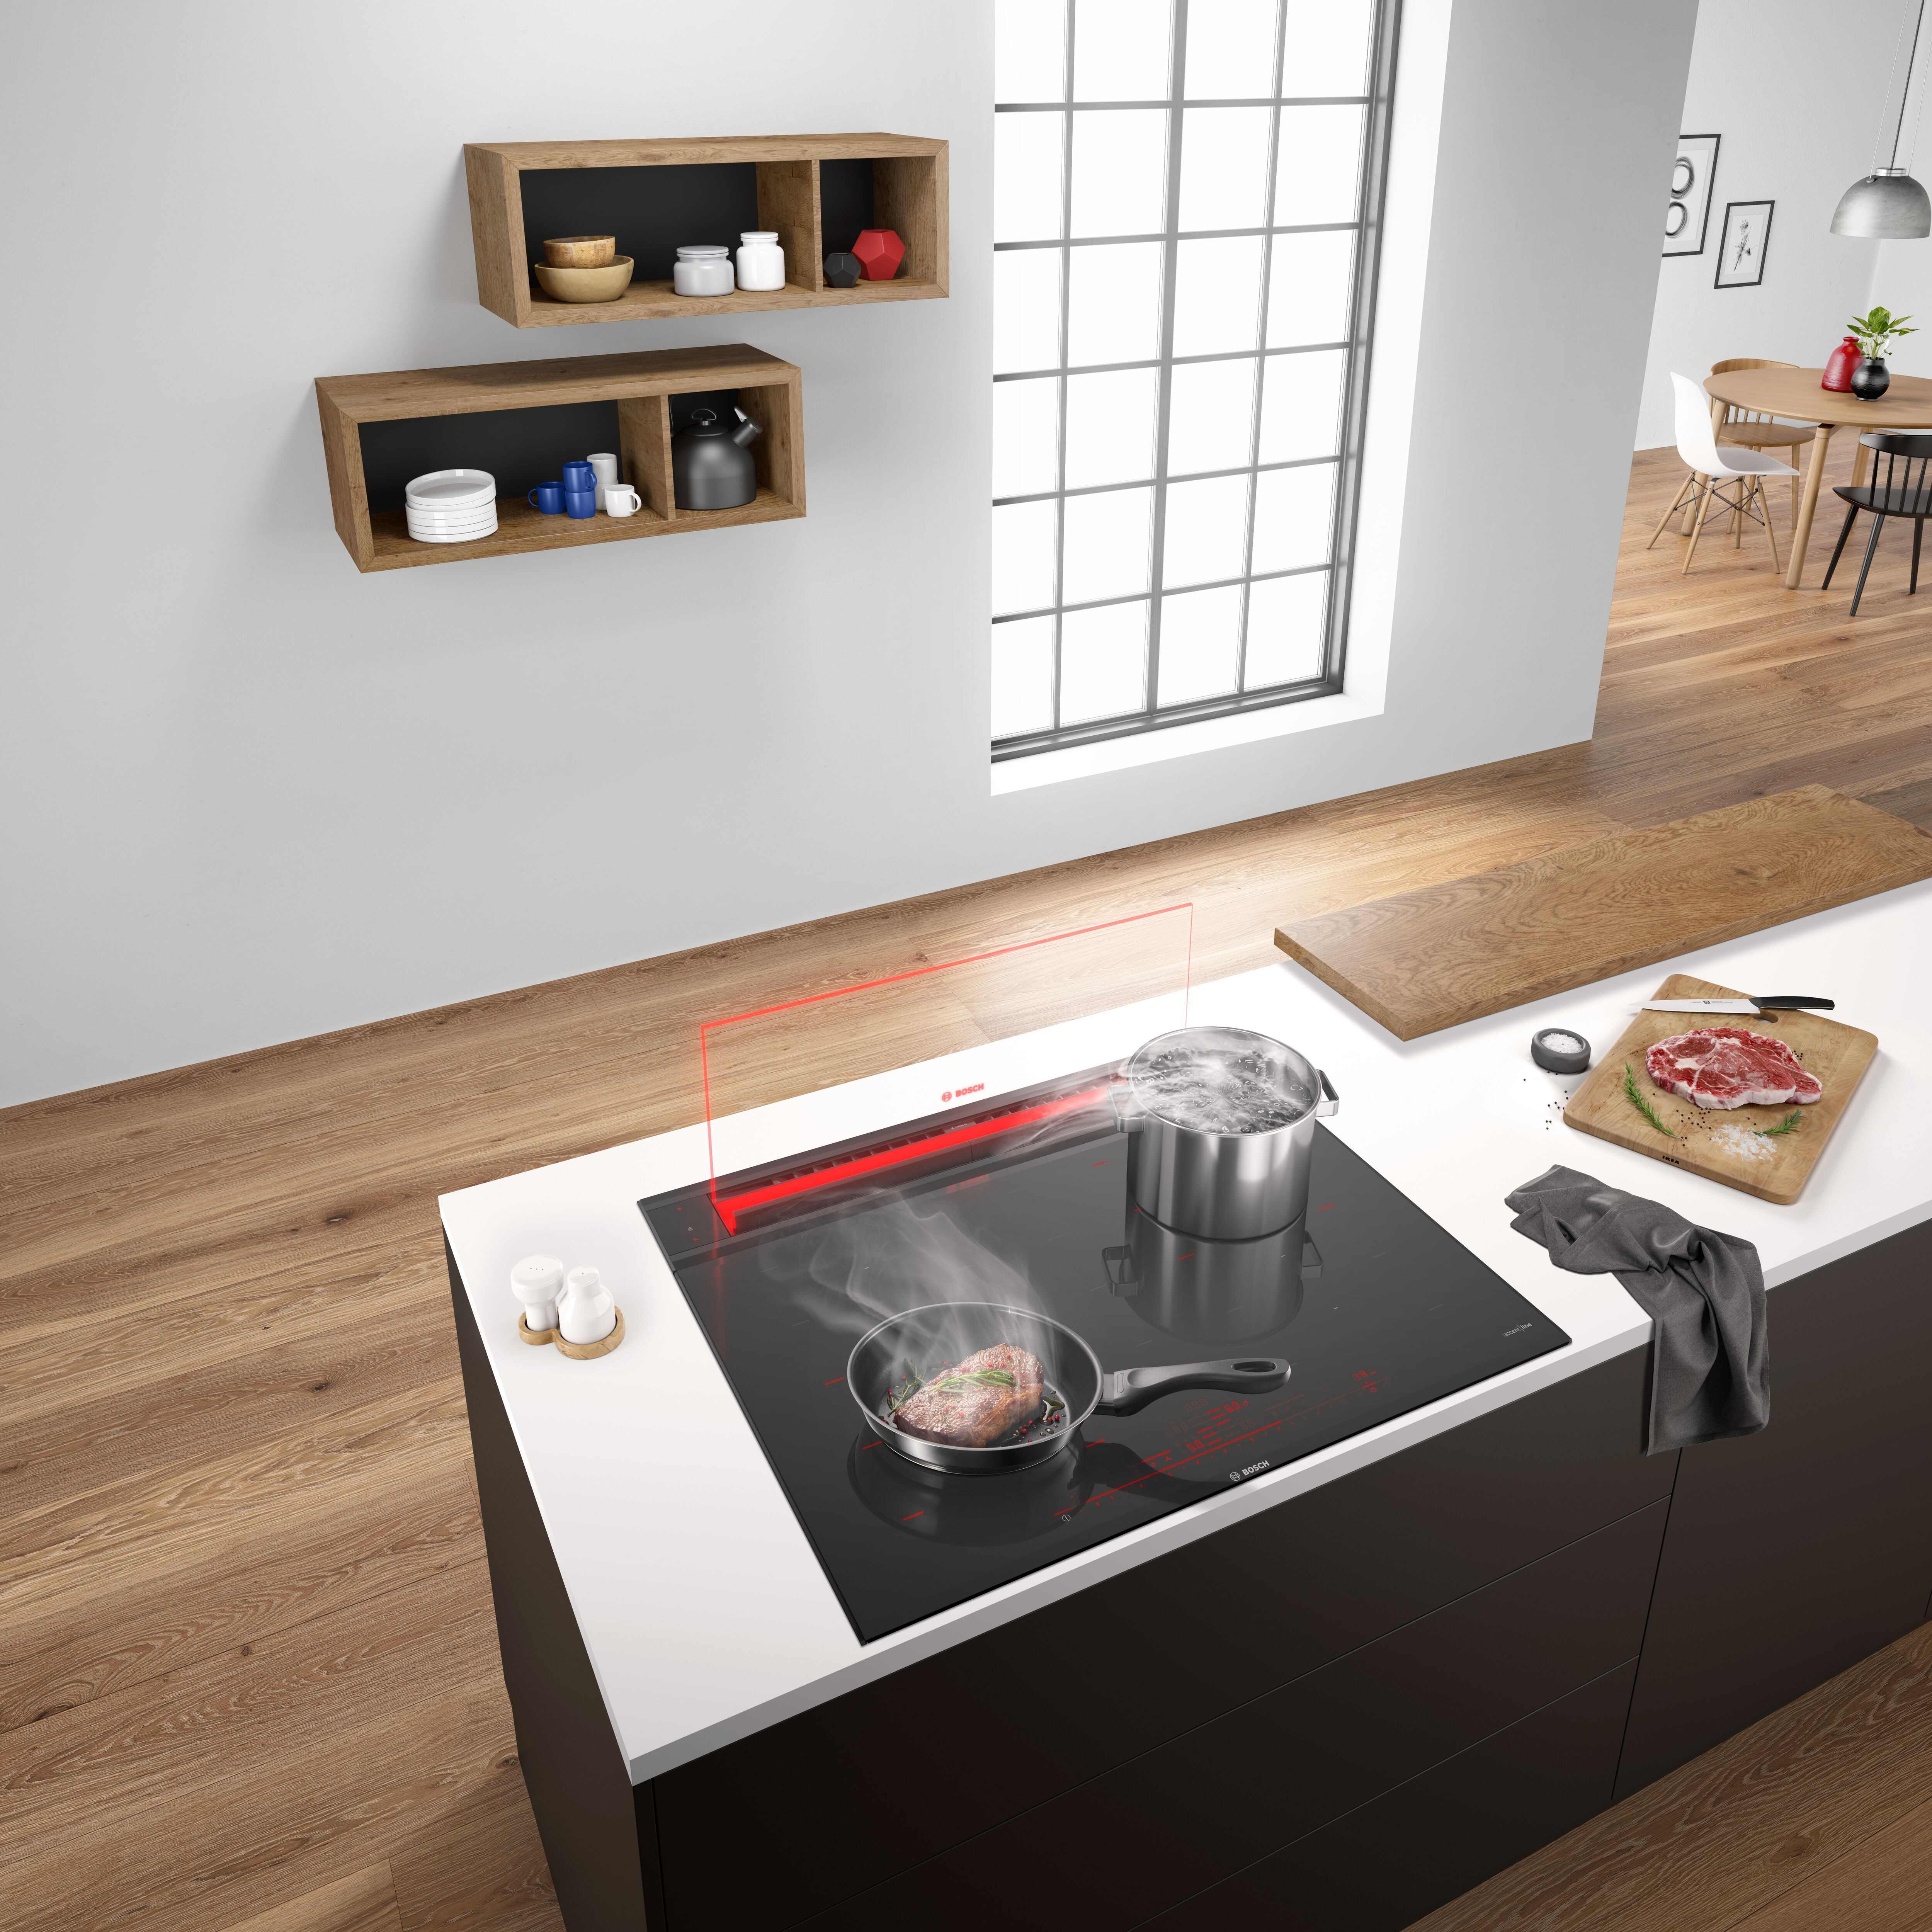 The new extractor from Bosch